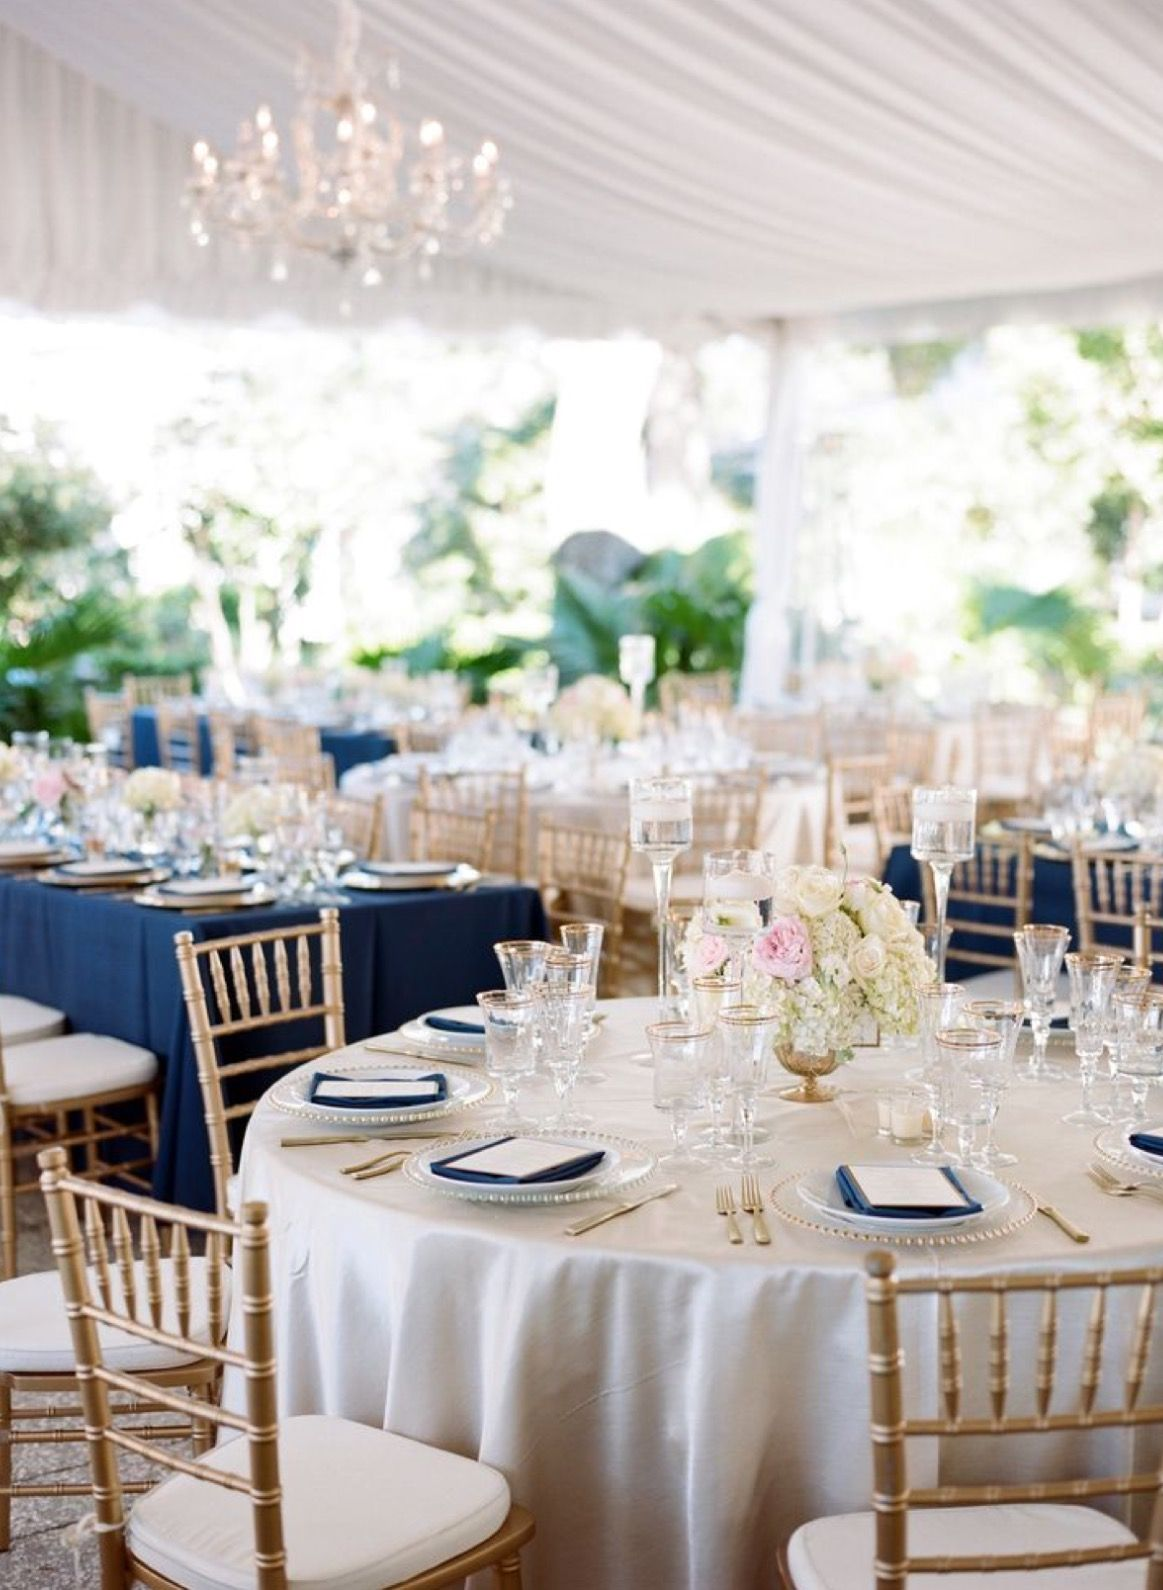 Potentially navy and shimmery gold/champagne table cloths instead of ...